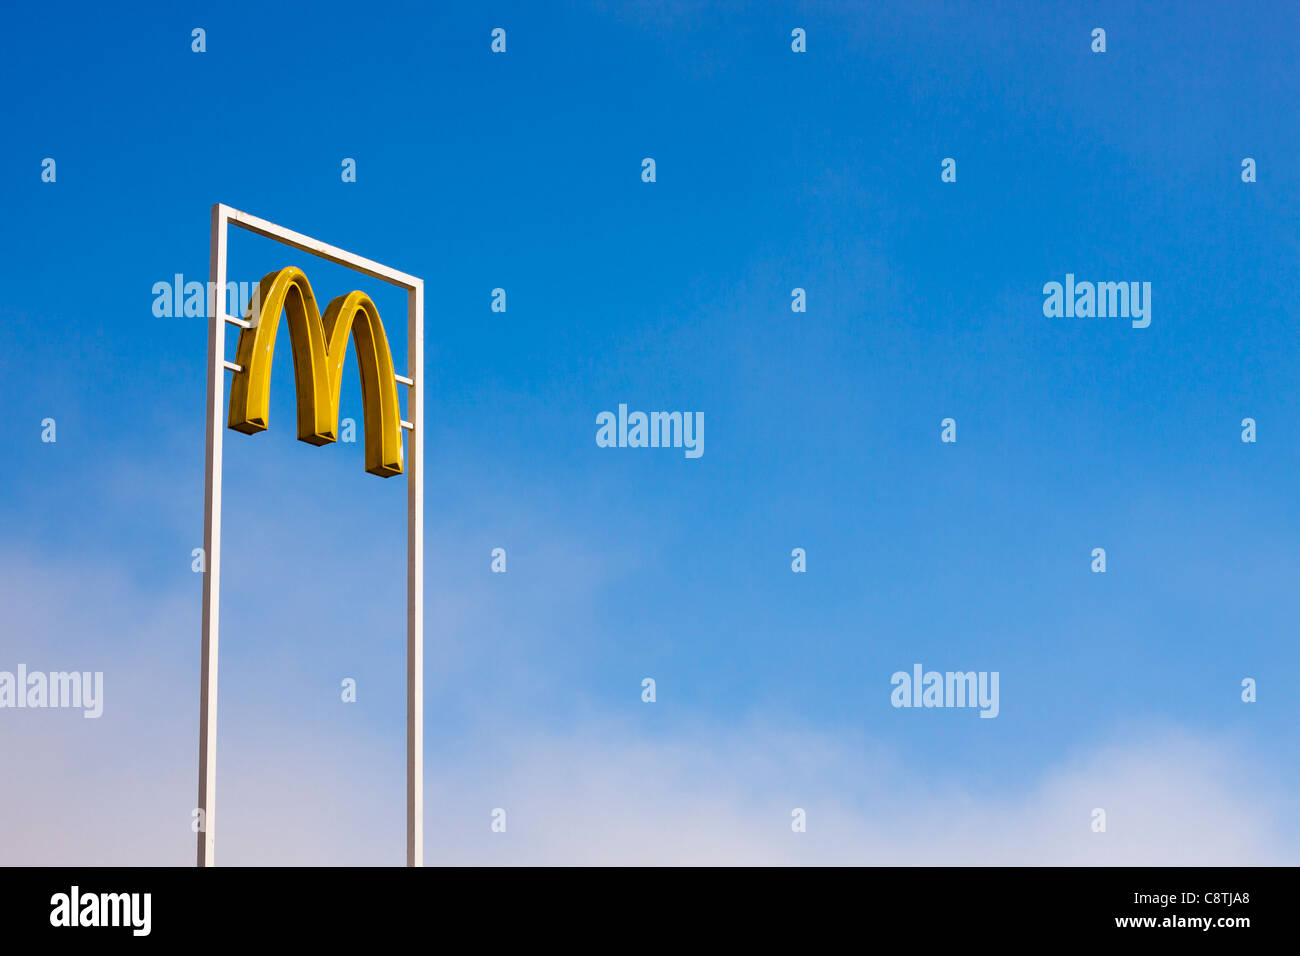 McDonalds sign over bright blue sky. - Stock Image